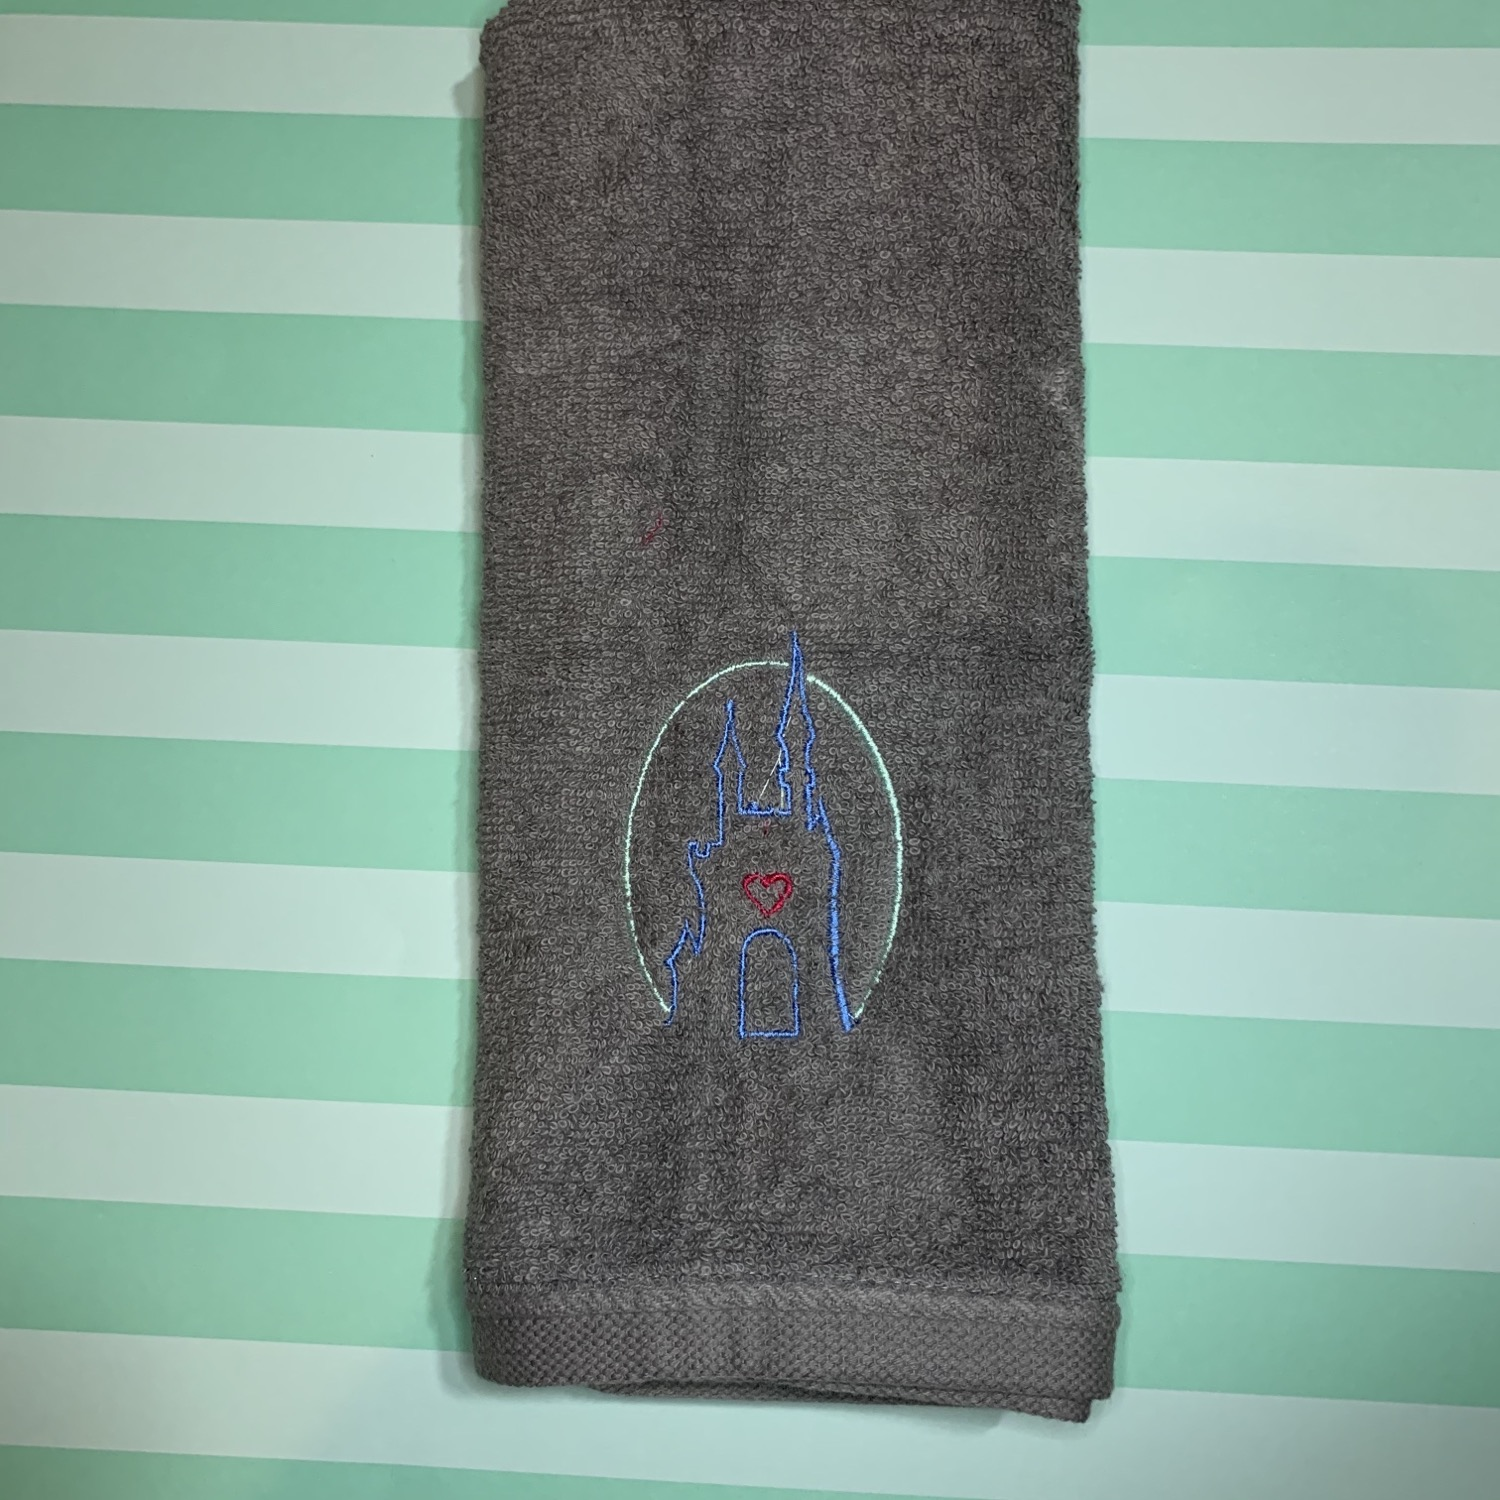 Castle with heart embroidered towels, blanket, makeup bag